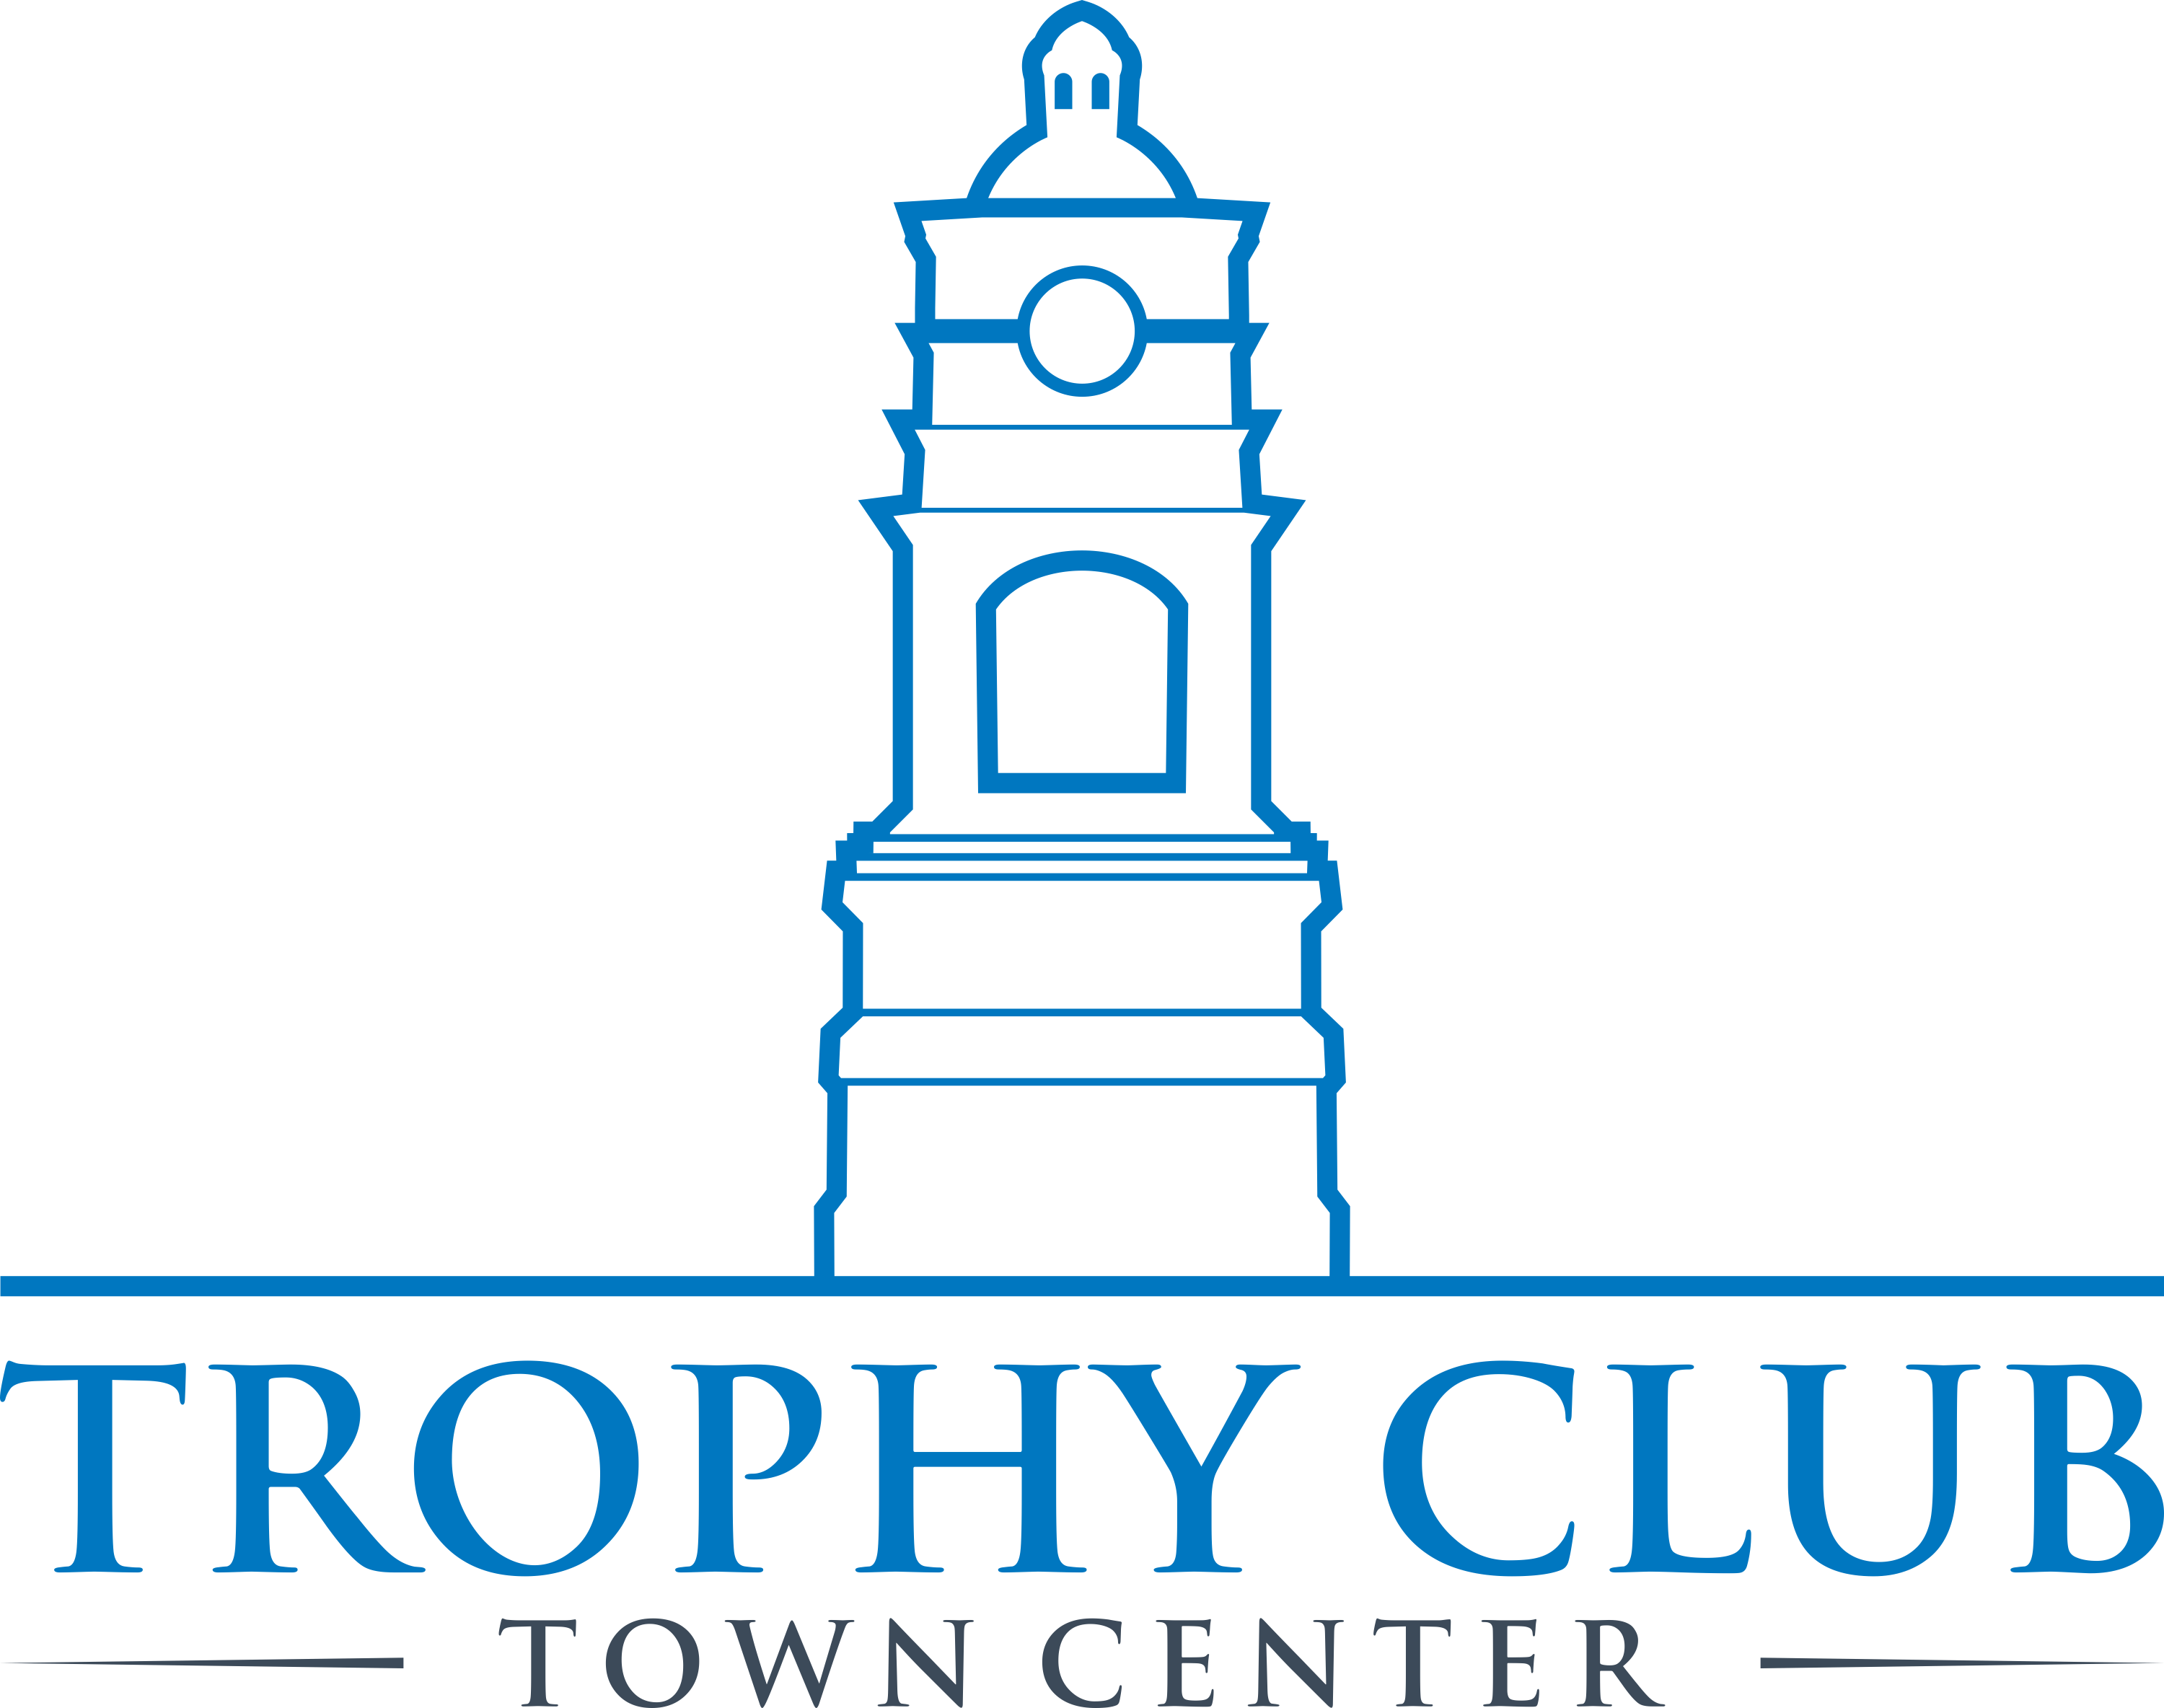 Trophy Club Town Center